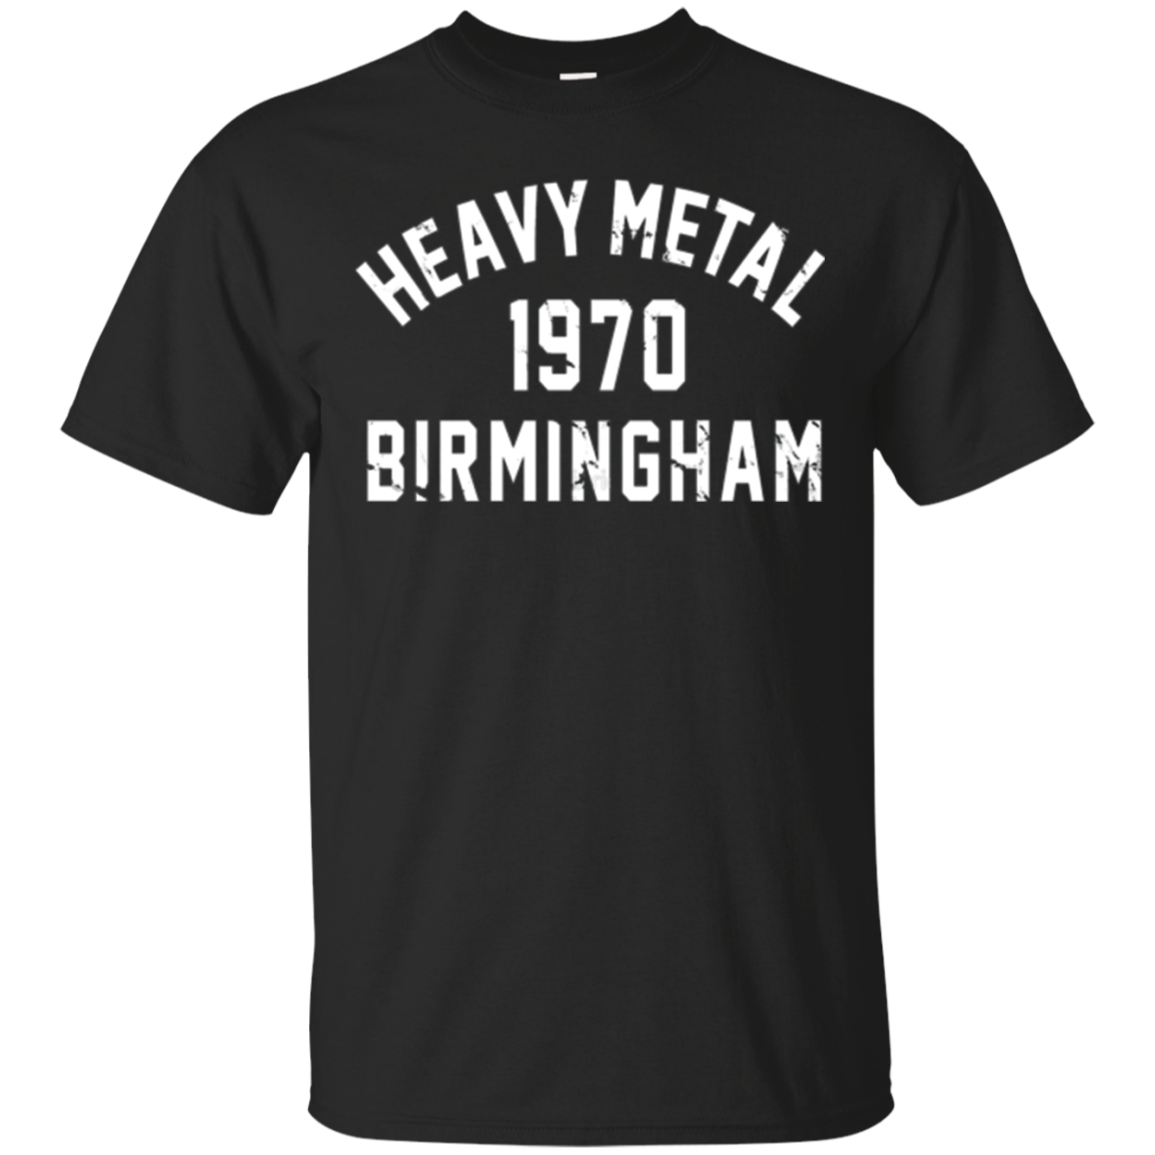 Dicky Ticker Heavy Metal 1970 T-shirt Birmingham Sabbath